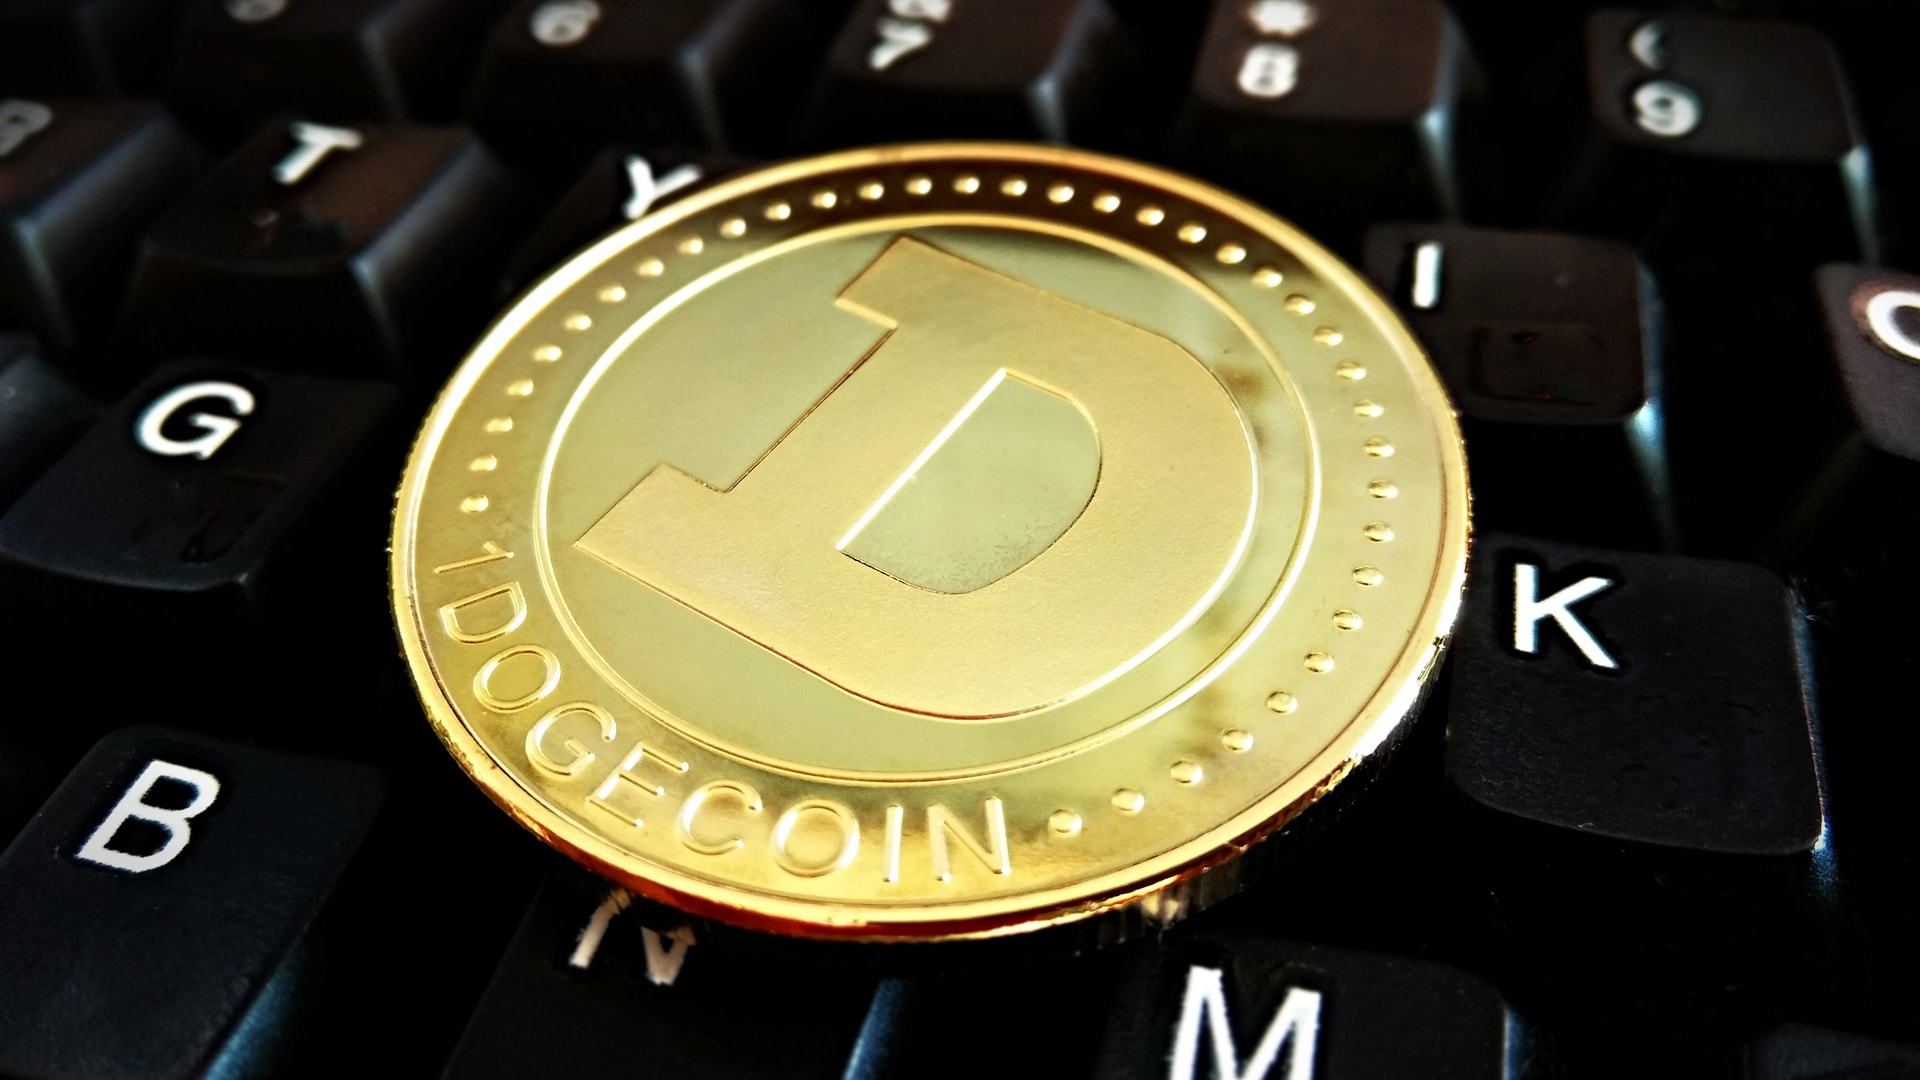 Dogecoin Price Prediction: Could Hit $0.3 But Be Wary of ...